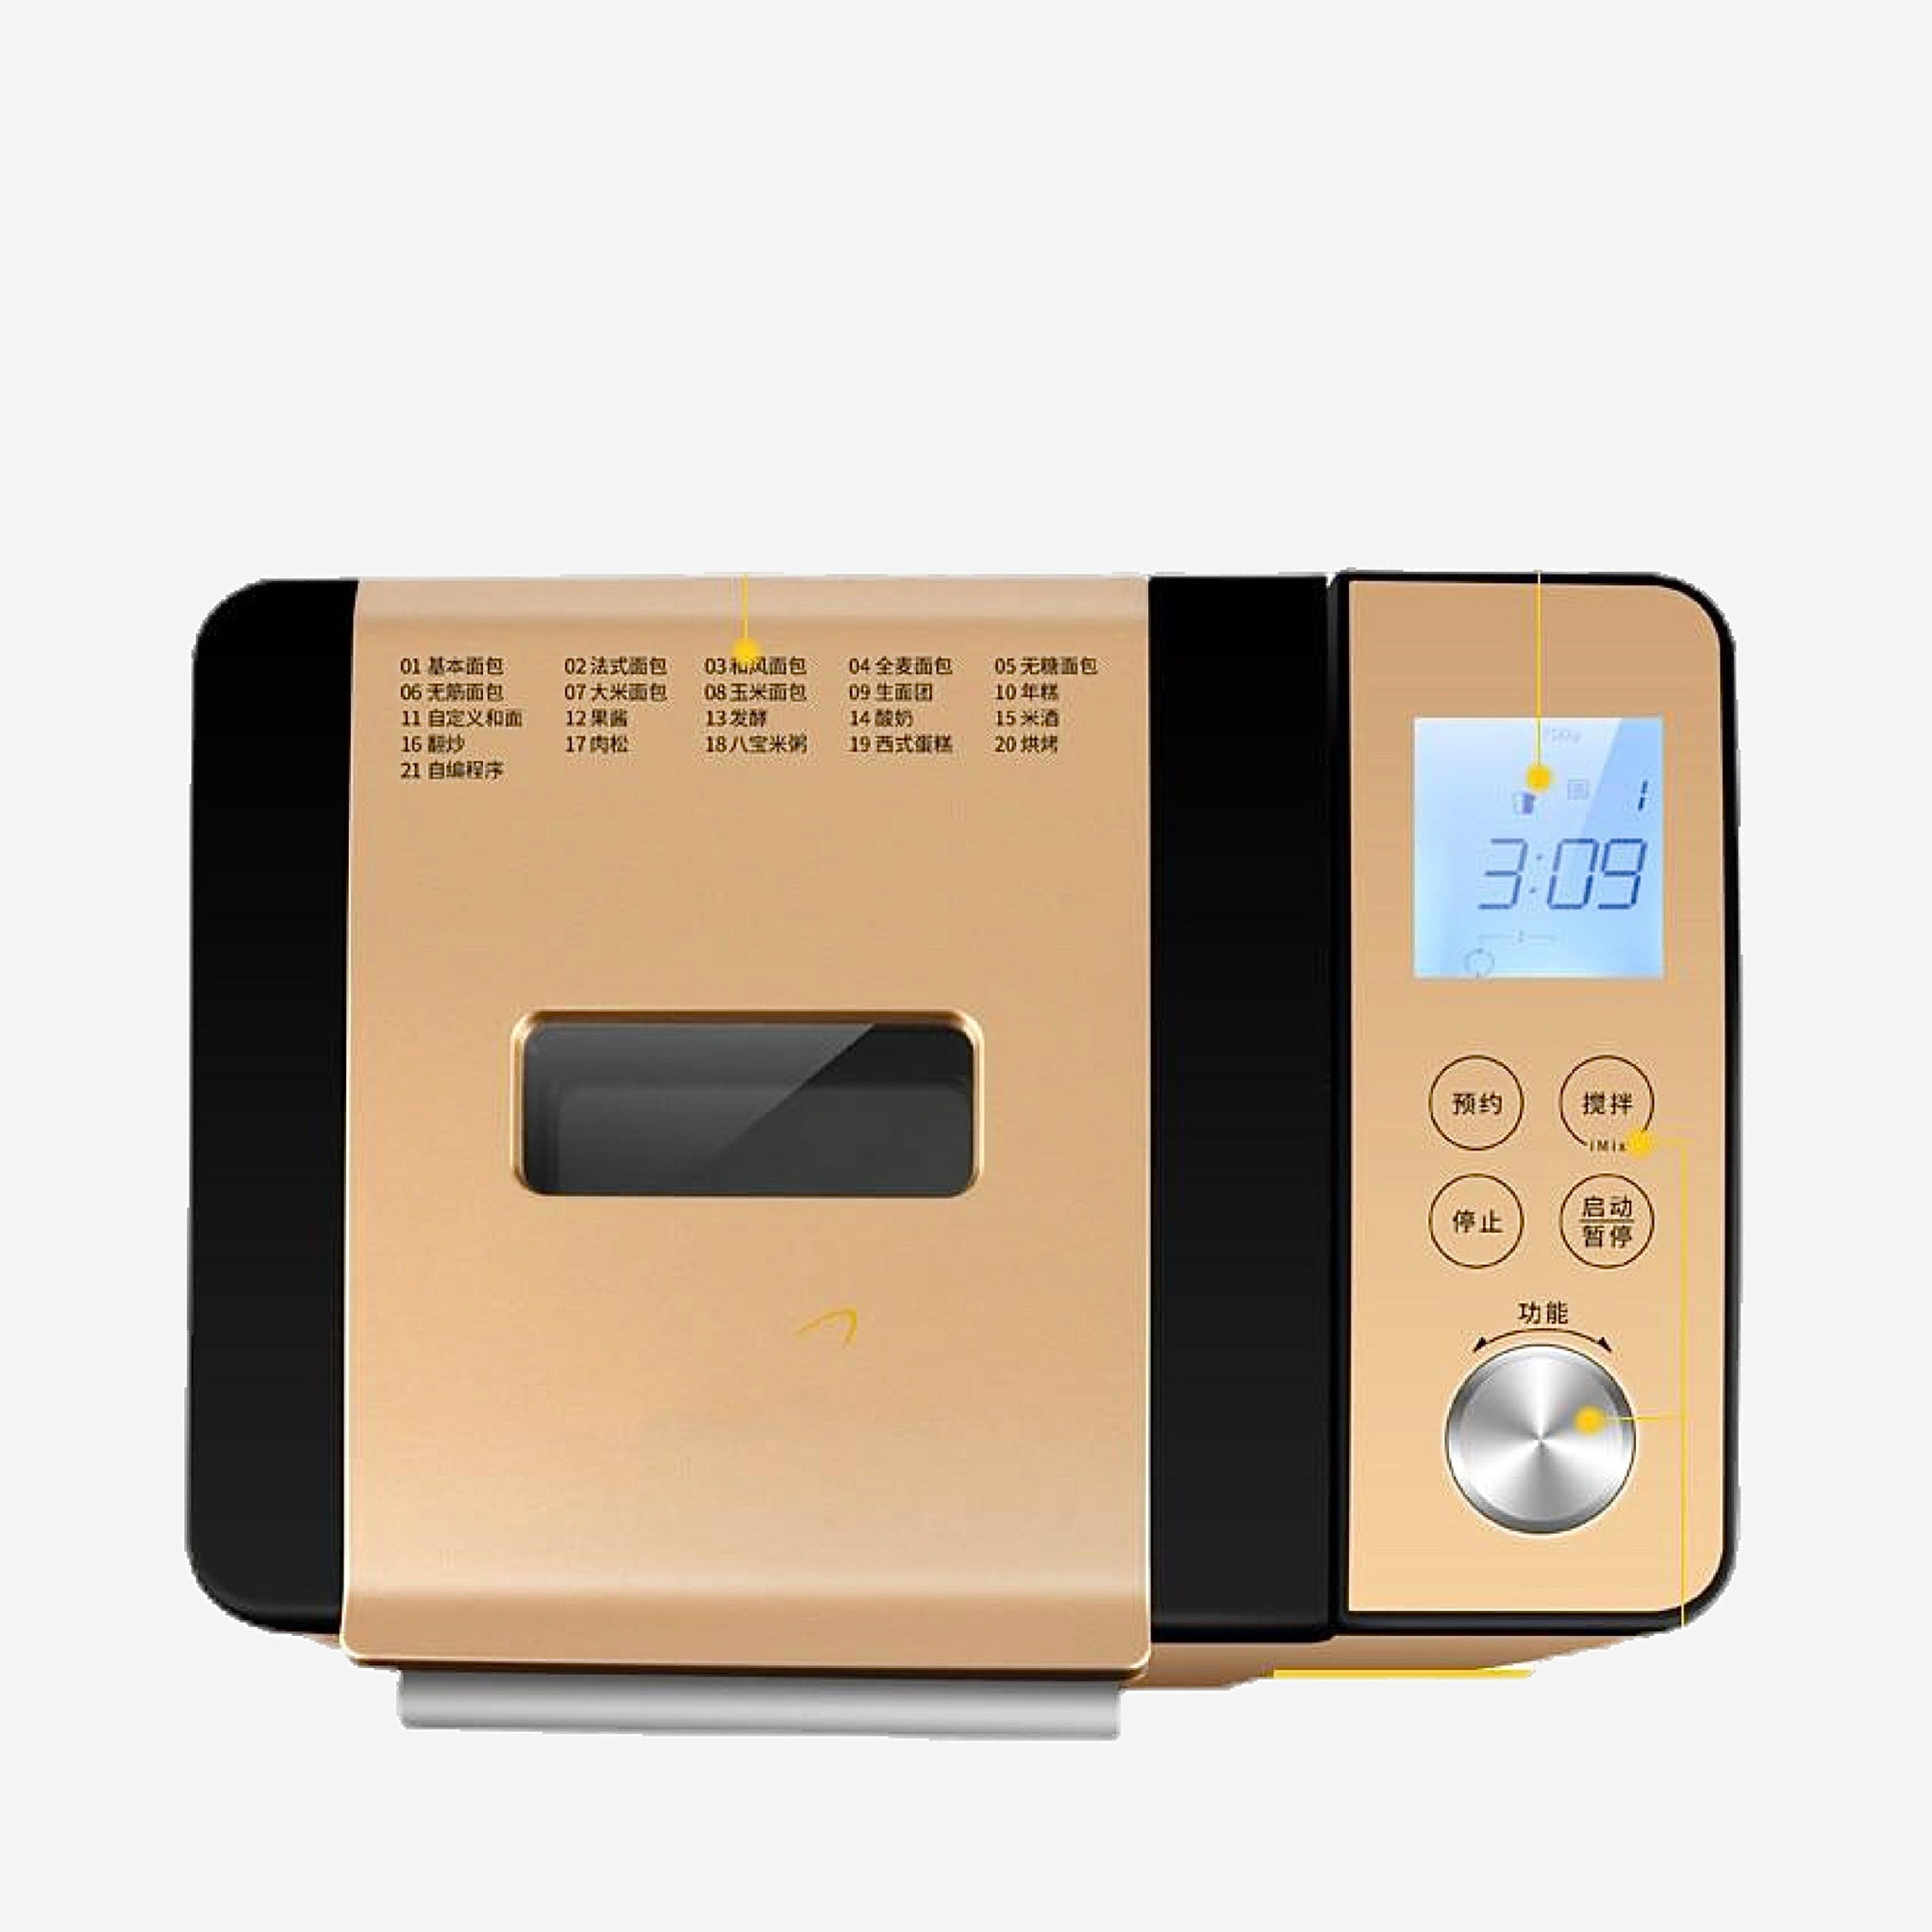 Fully Automatic Bread Machine The bread maker Intelligent double - sprinkled kitchen appliance Trendy